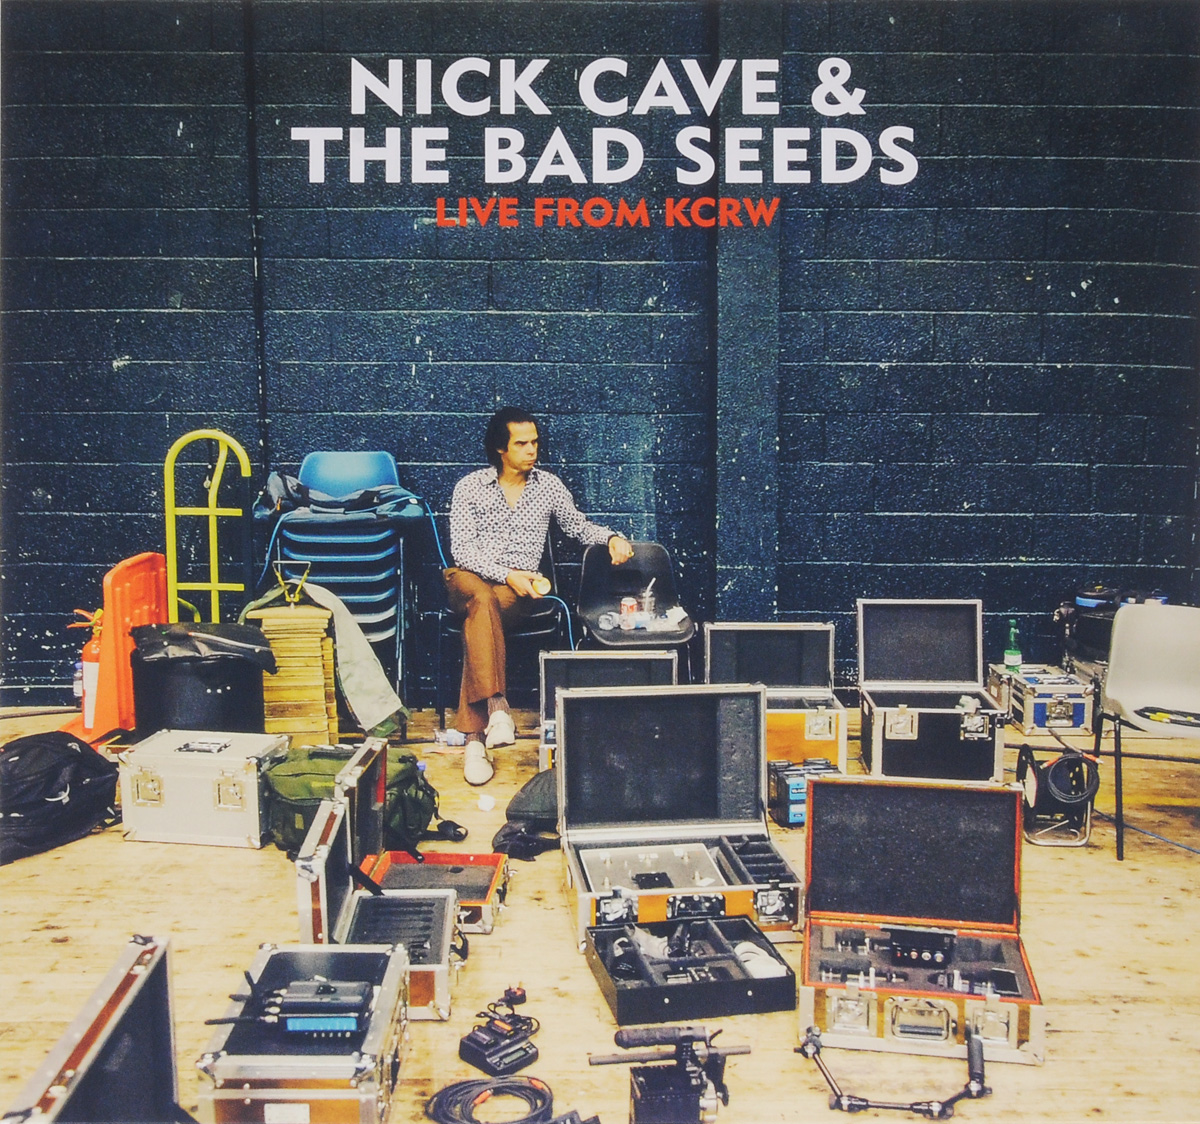 Ник Кейв,The Bad Seeds Nick Cave & The Bad Seeds. Live From KCRW (2 LP) ник кейв maximum nick cave the unauthorised biography of nick cave